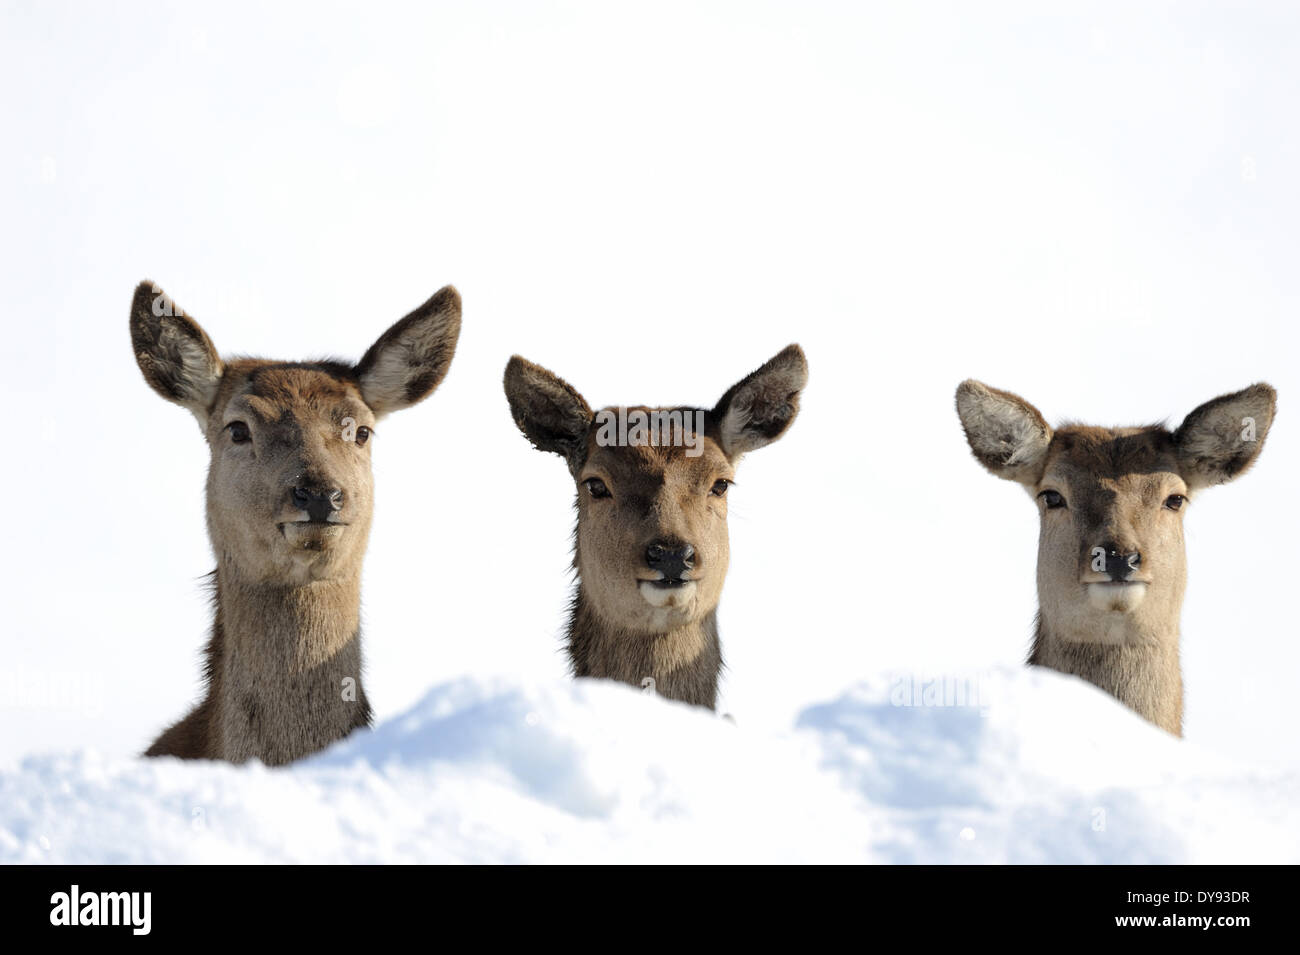 Red deer antlers antler Cervid Cervus elaphus deer stag stags hoofed animals summers velvet autumn snow animal animals Germ - Stock Image